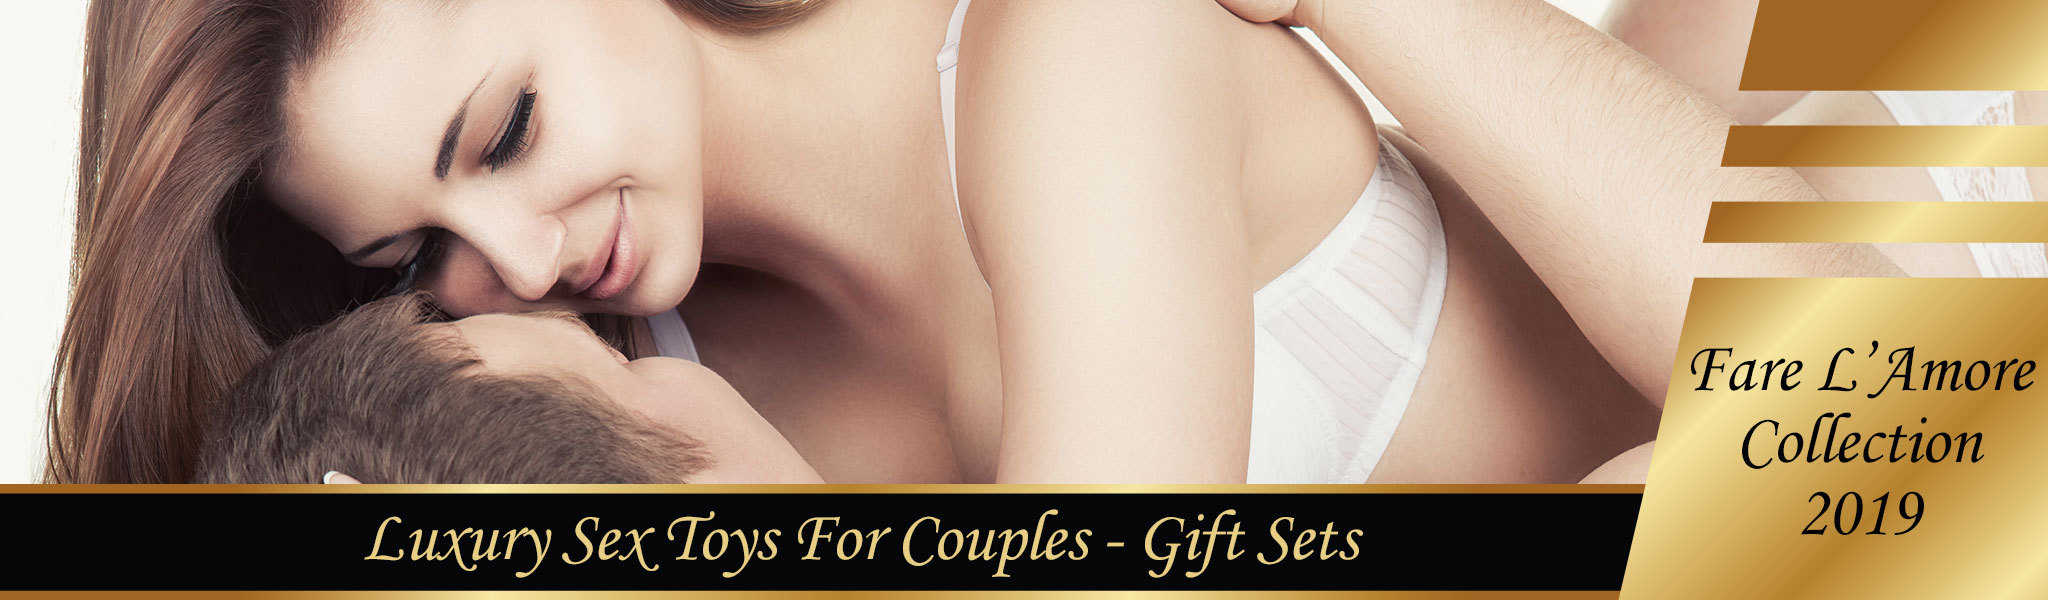 Luxury Gift Sets | Luxury Sex Toys | Fare L'Amore